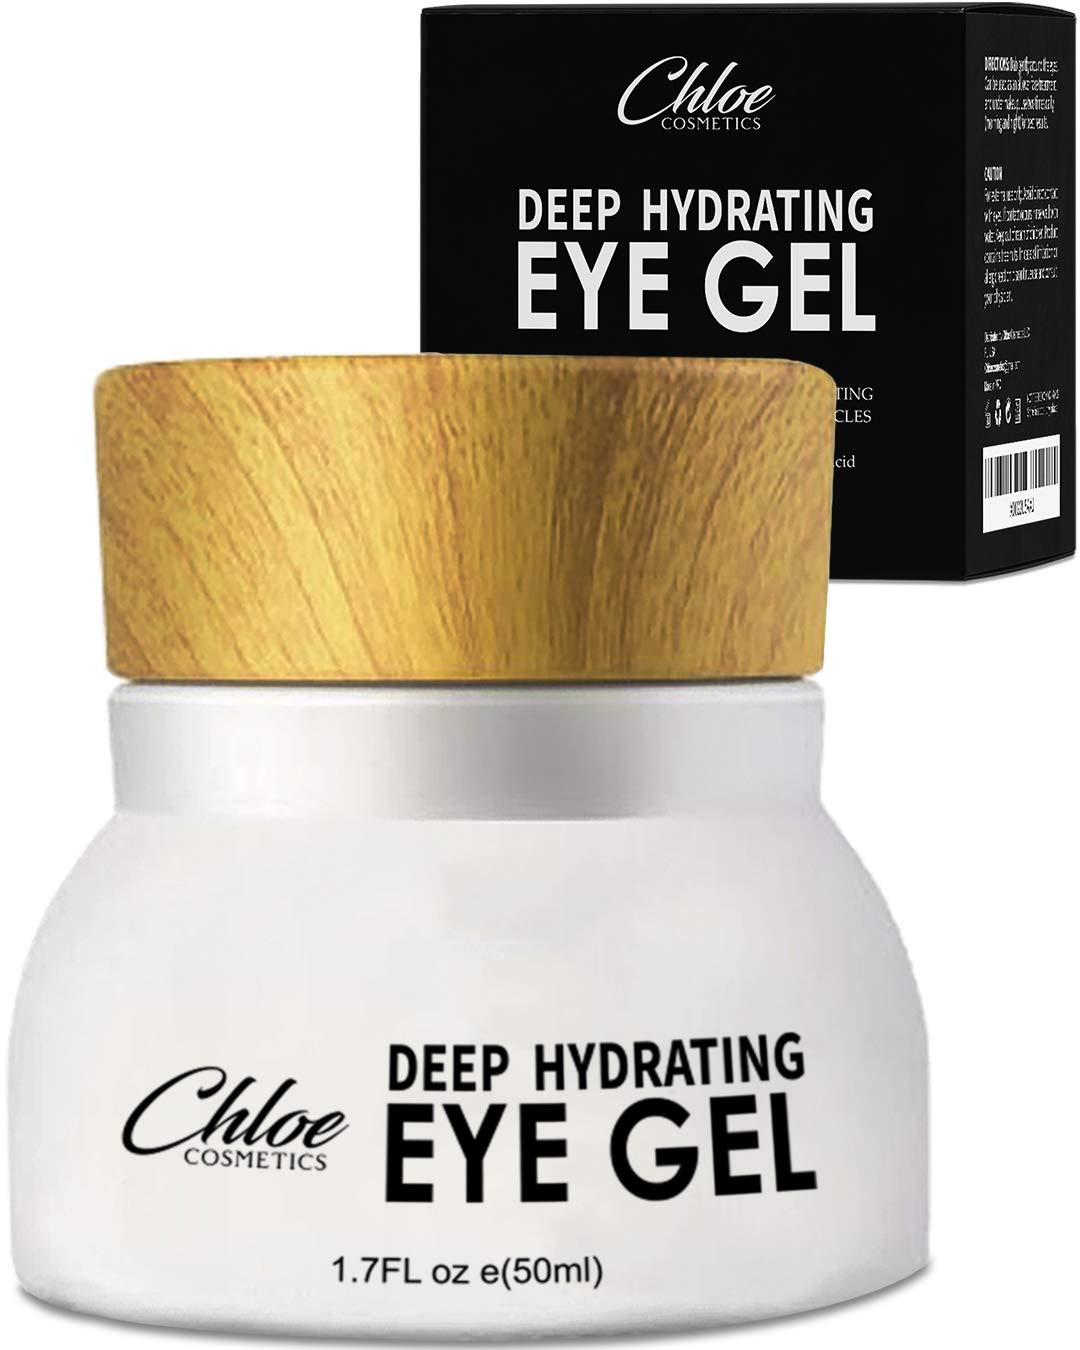 Eye Cream For Dark Circles and Puffiness - Anti Aging Wrinkle Remover Eye Gel - Under Eyes Treatment for Men and Women by Chloe Cosmetics